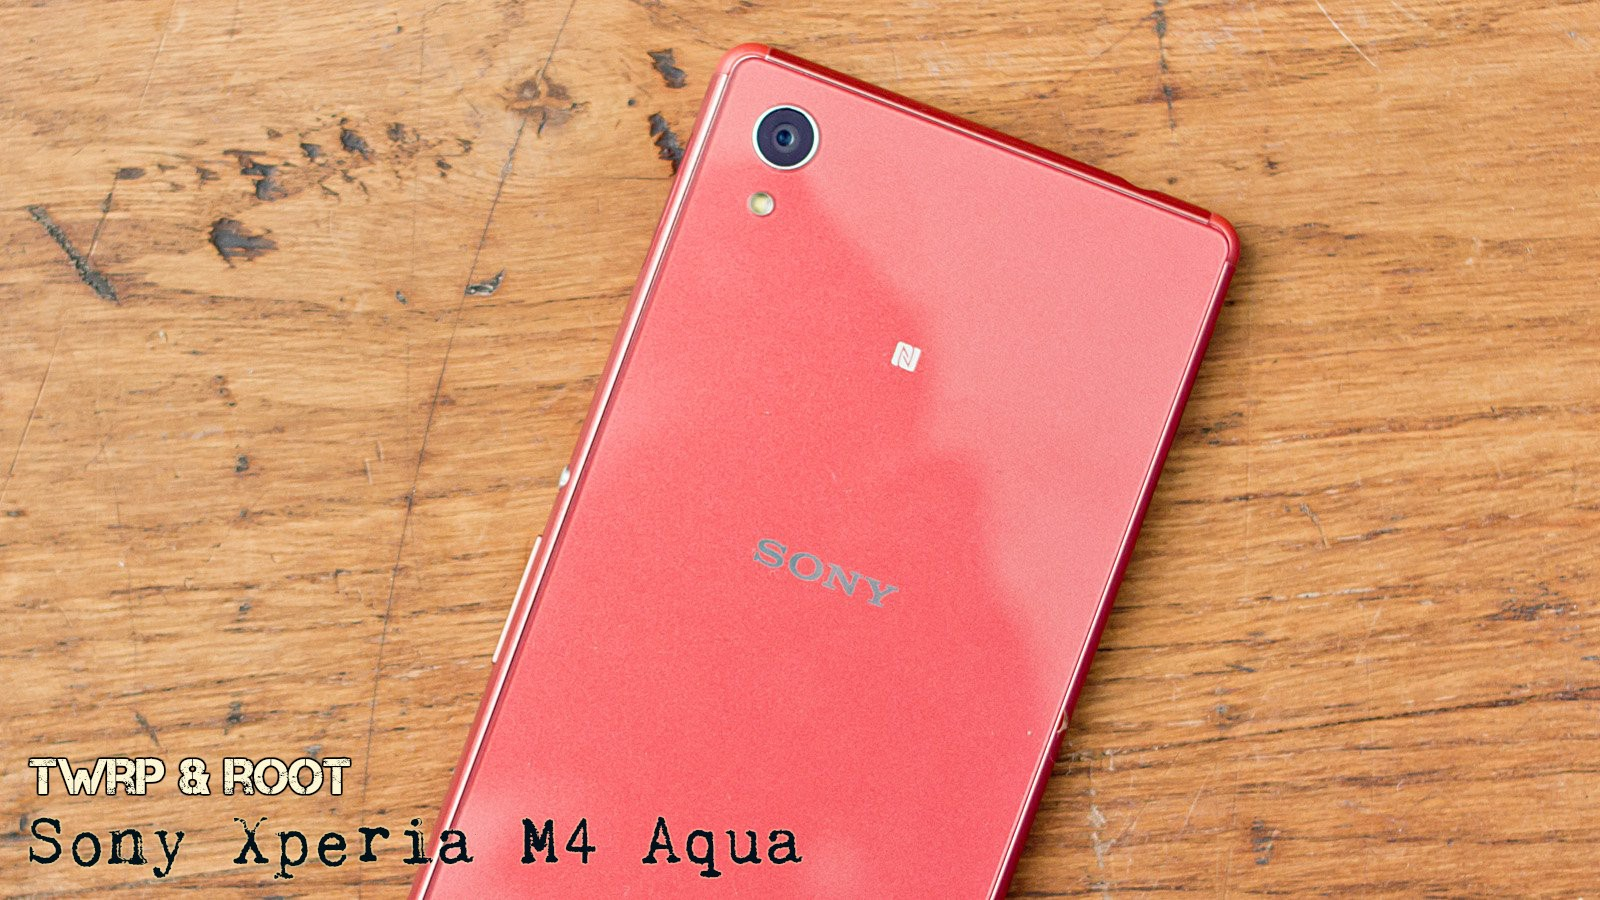 Install TWRP Recovery and Root Sony Xperia M4 Aqua